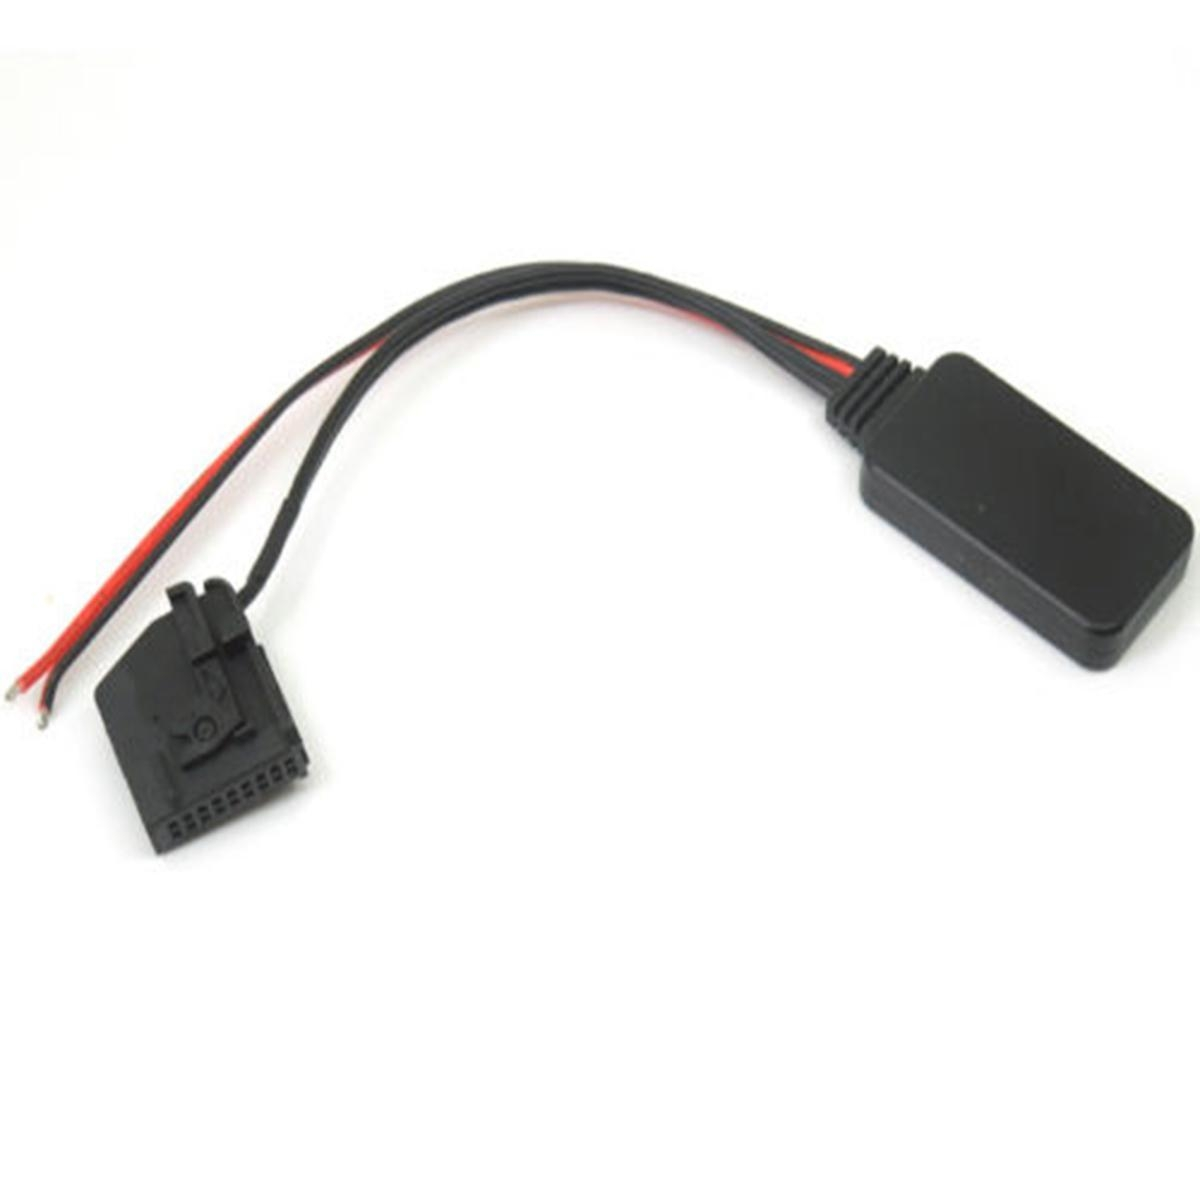 Buy Generic Bluetooth Adapter Aux Cable For Mercedes Comand 20 Aps Wiring Connectors Image